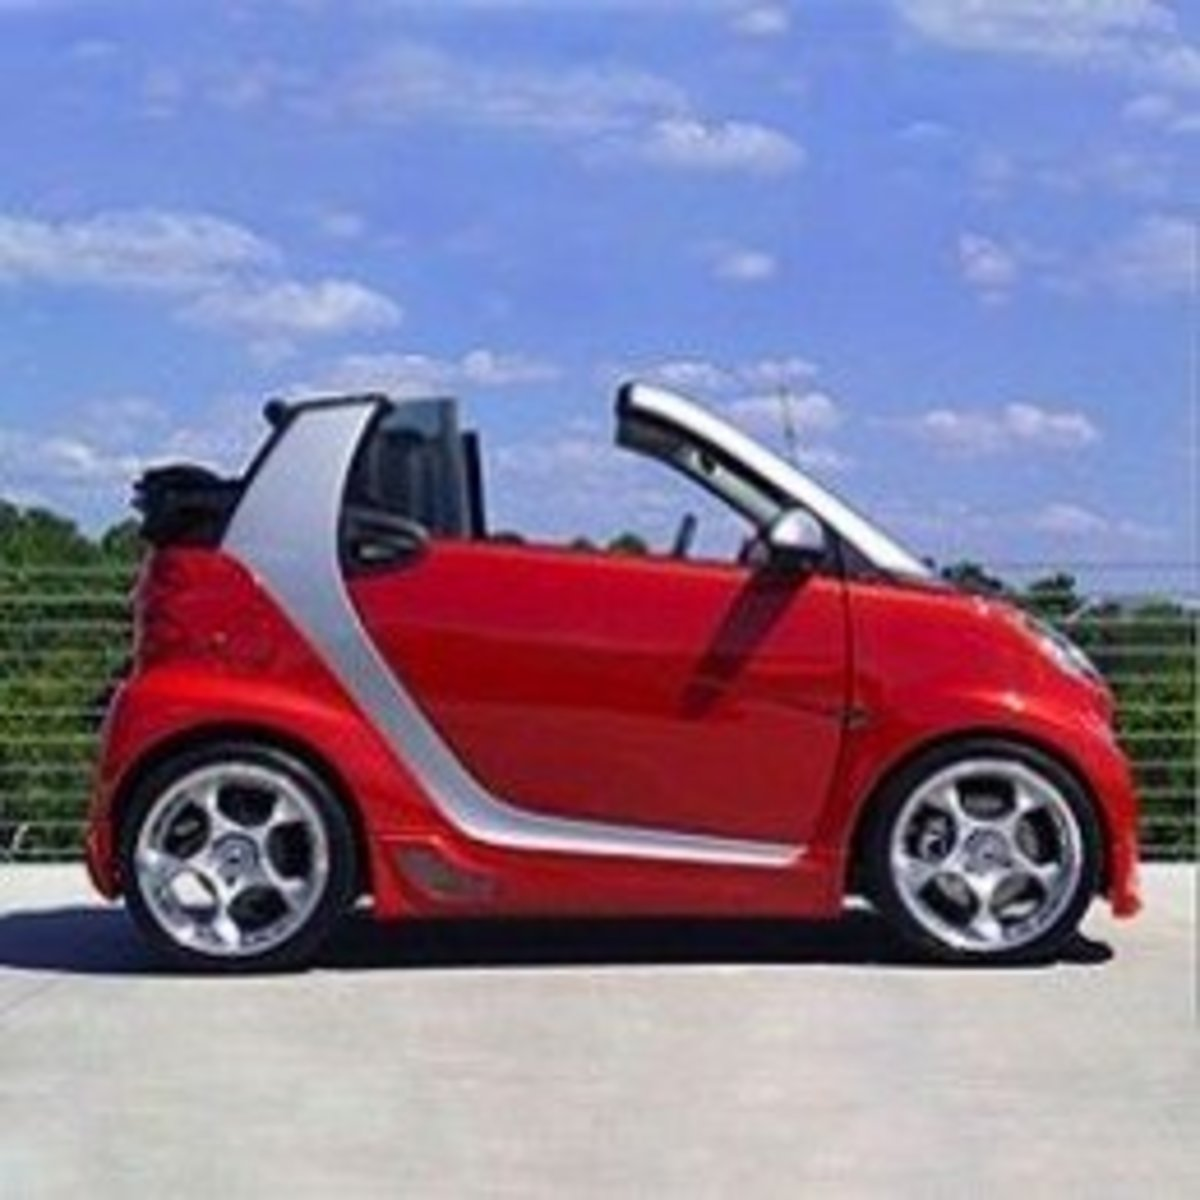 Smart Car Body Kits: Wicked Kuhl Body Kits and Mods